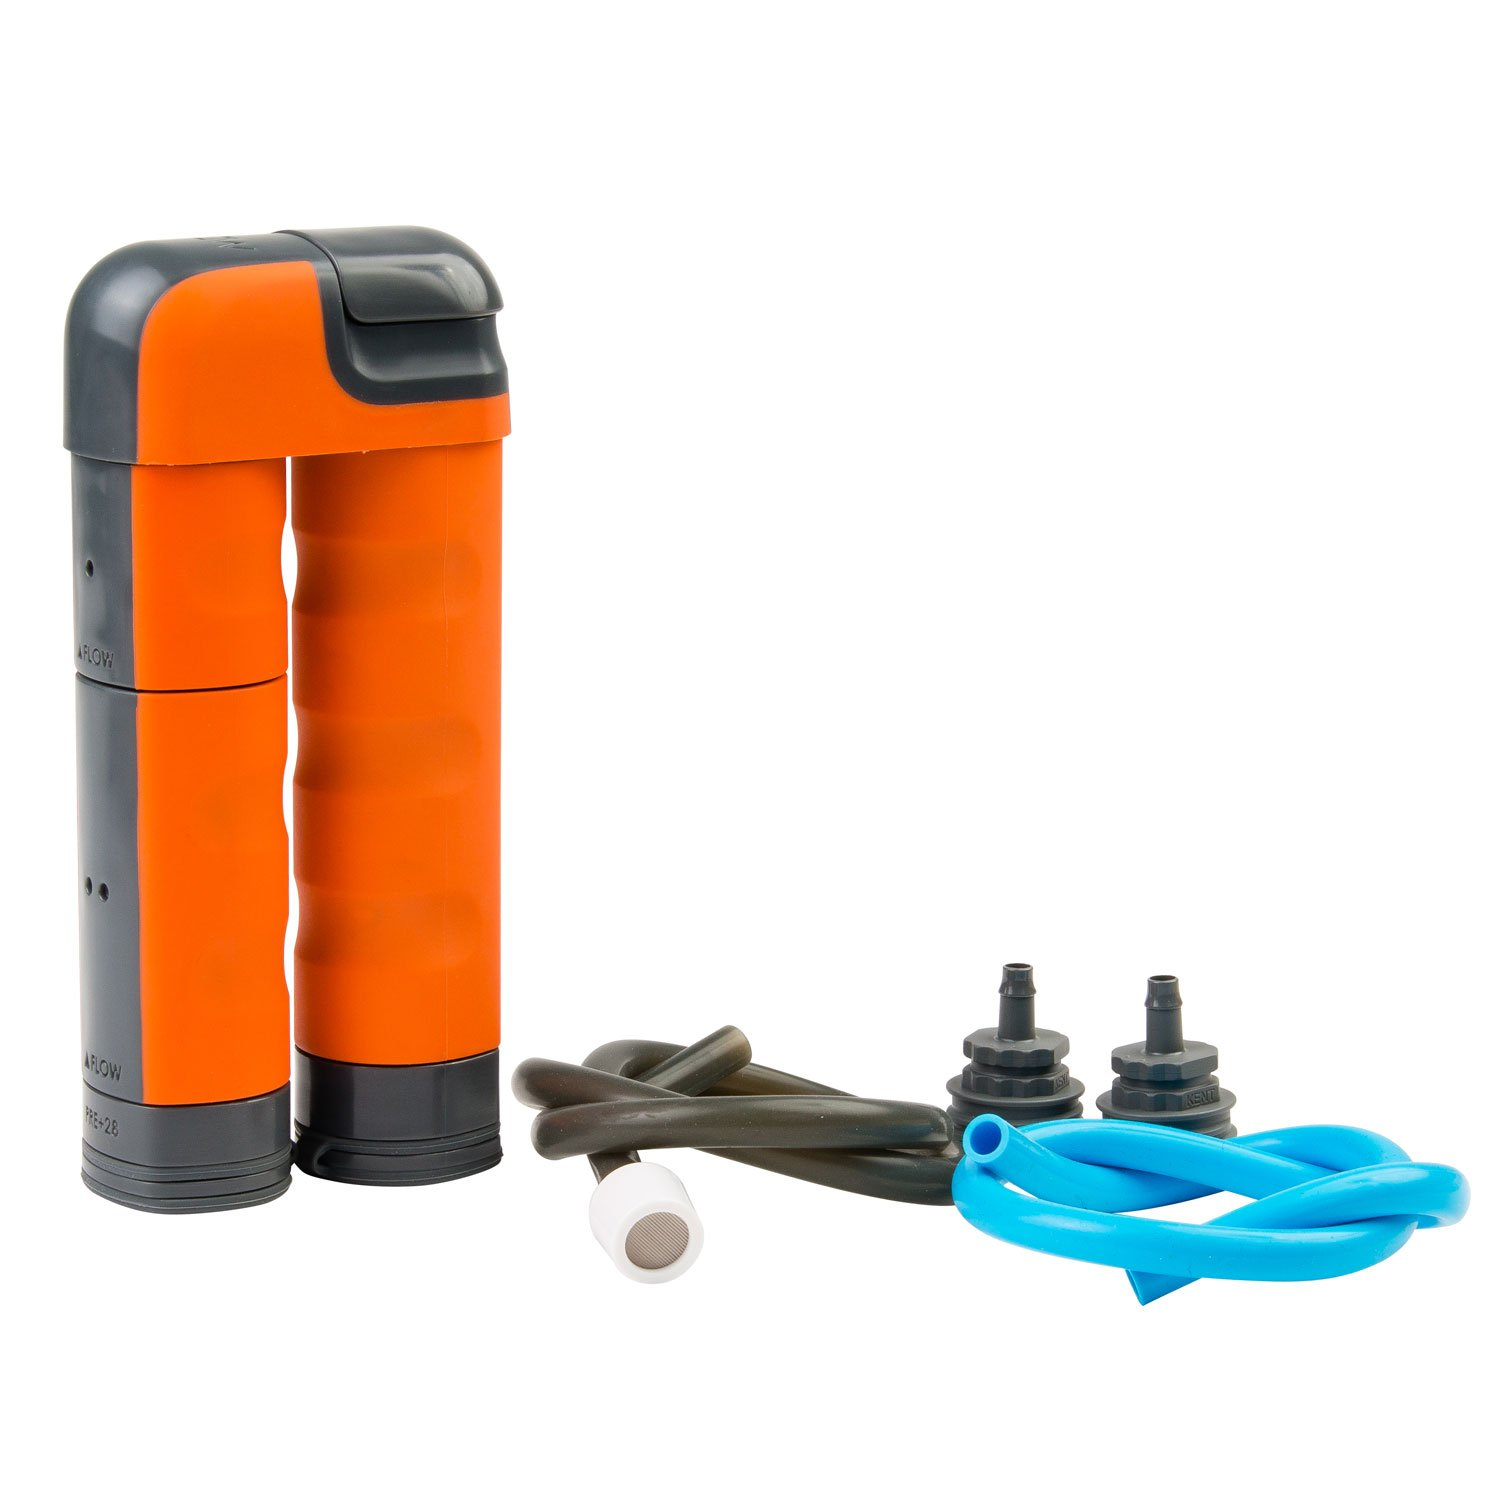 Renovo Water MUV Backcountry Pump Water Filter - Blocks Chemicals, Heavy Metals, Bacteria, and more by Renovo Water